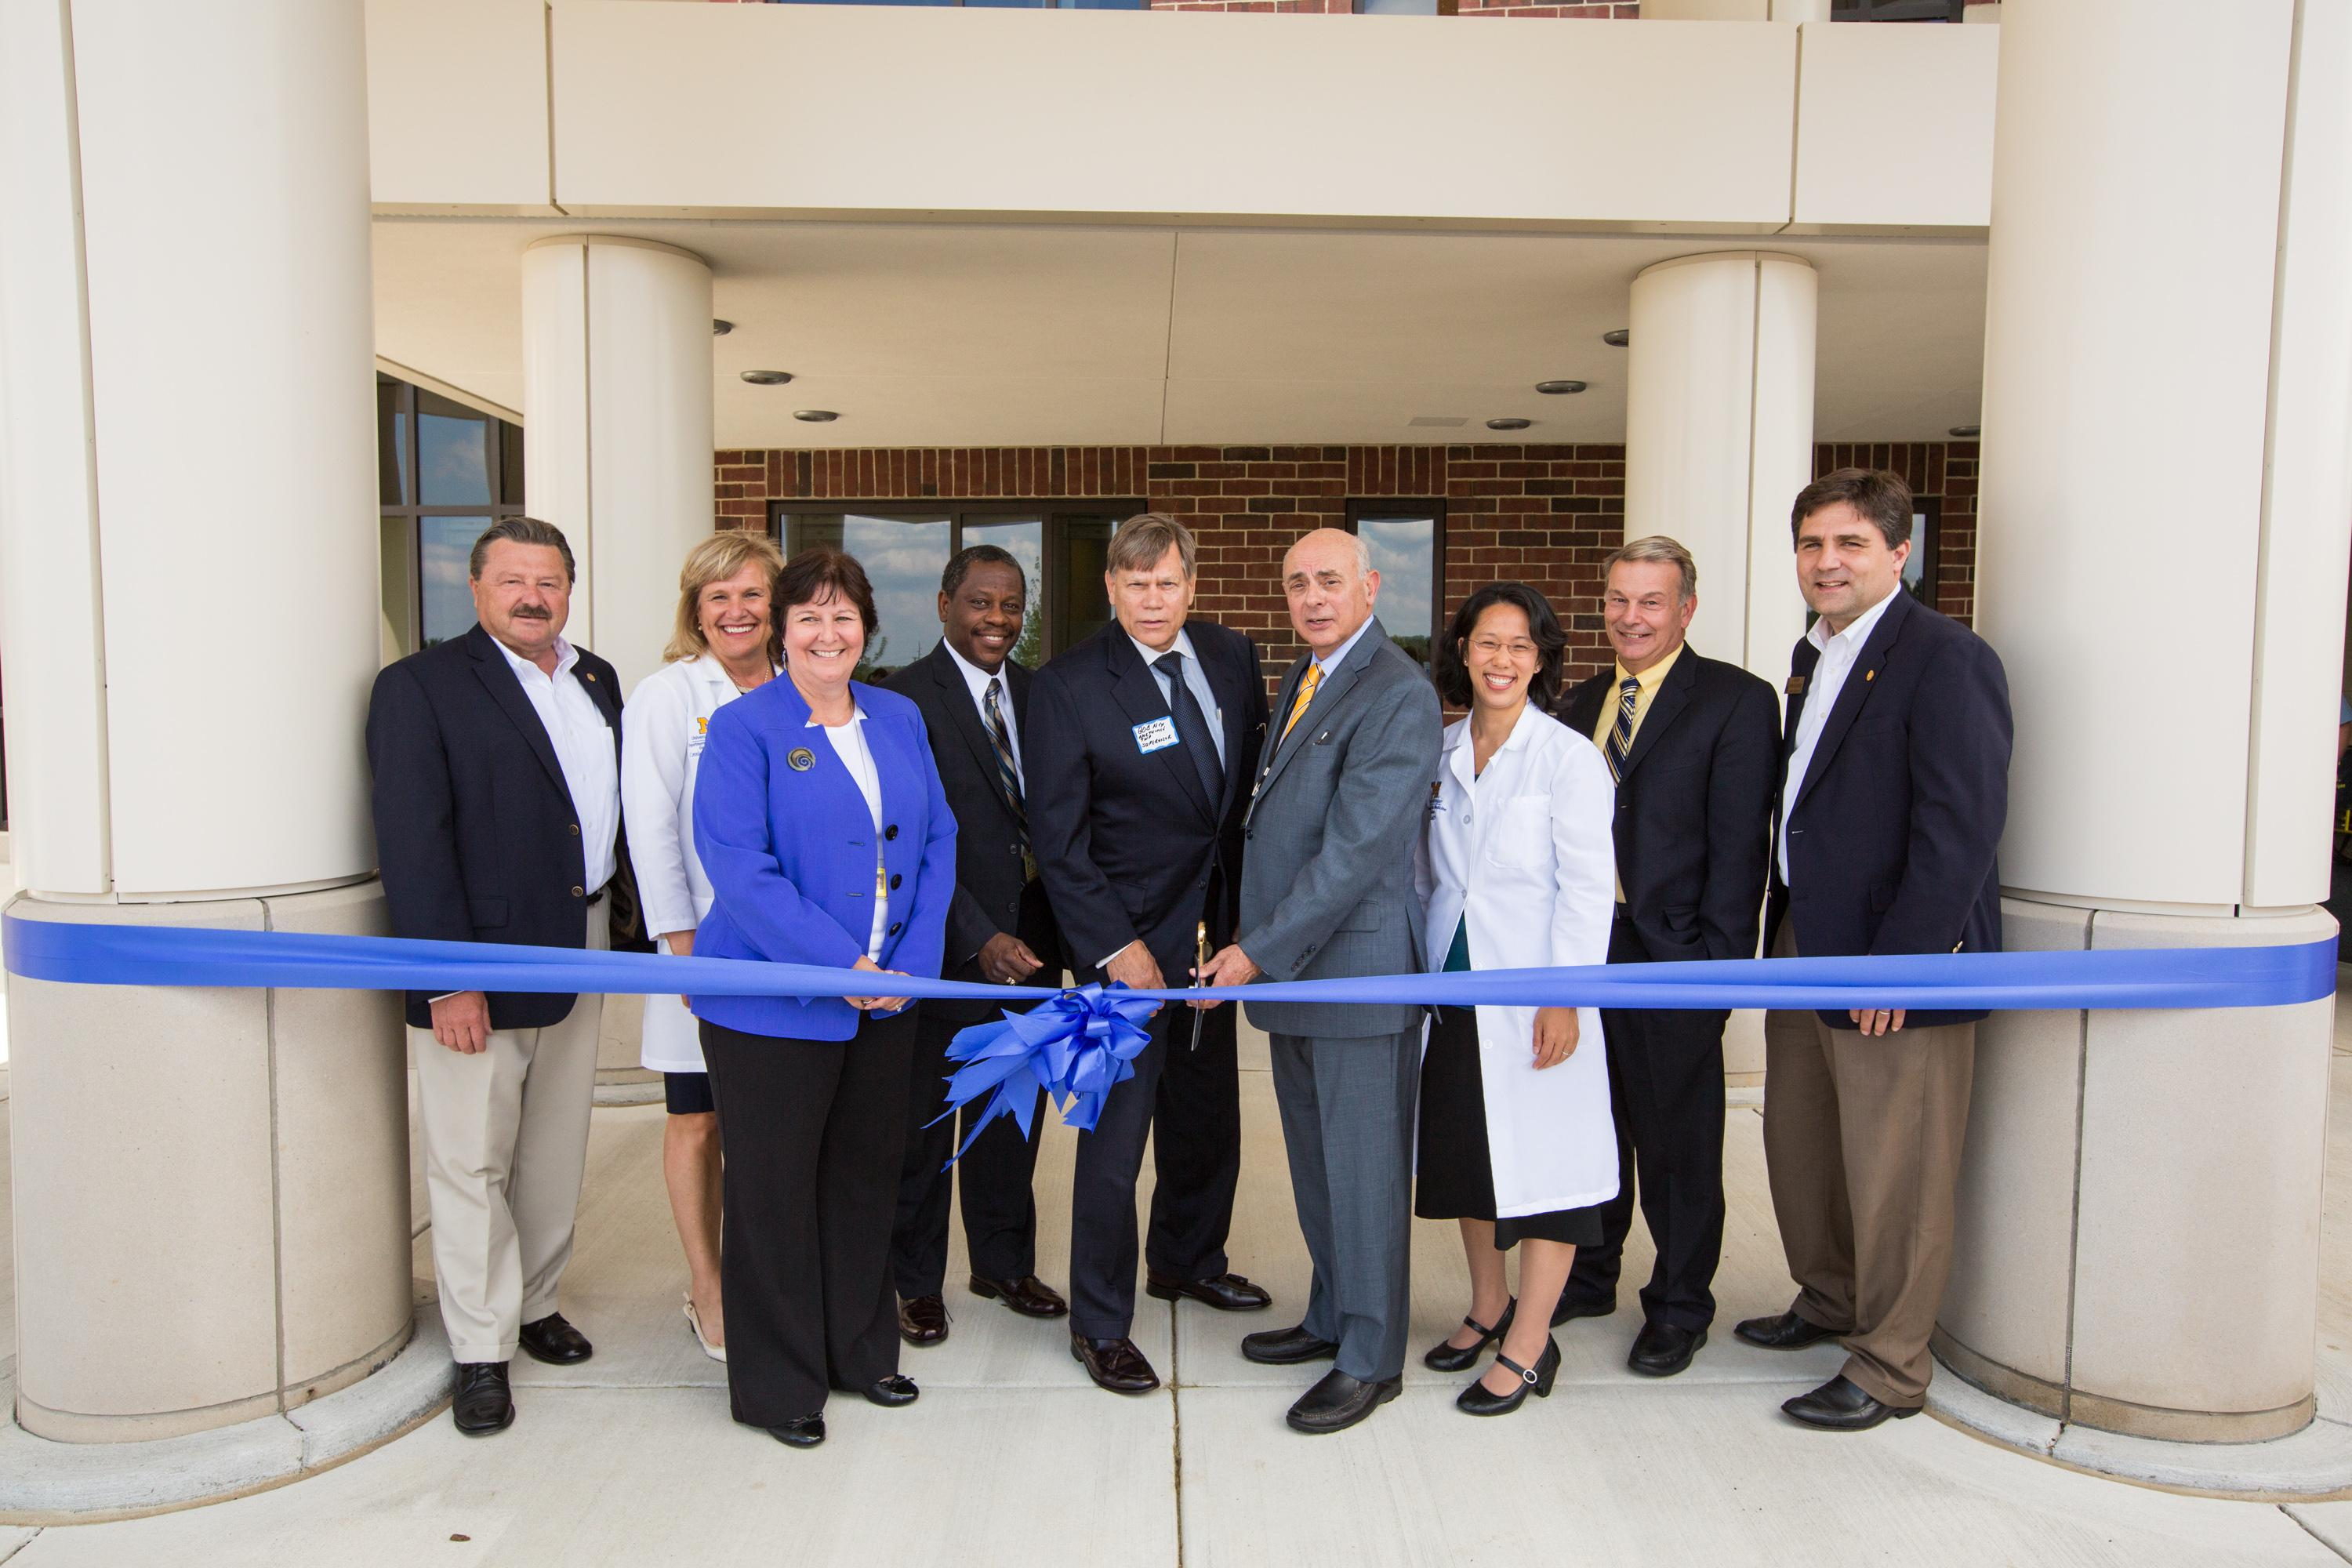 U-M leaders and elected officials celebrate opening of Northville Health Center.